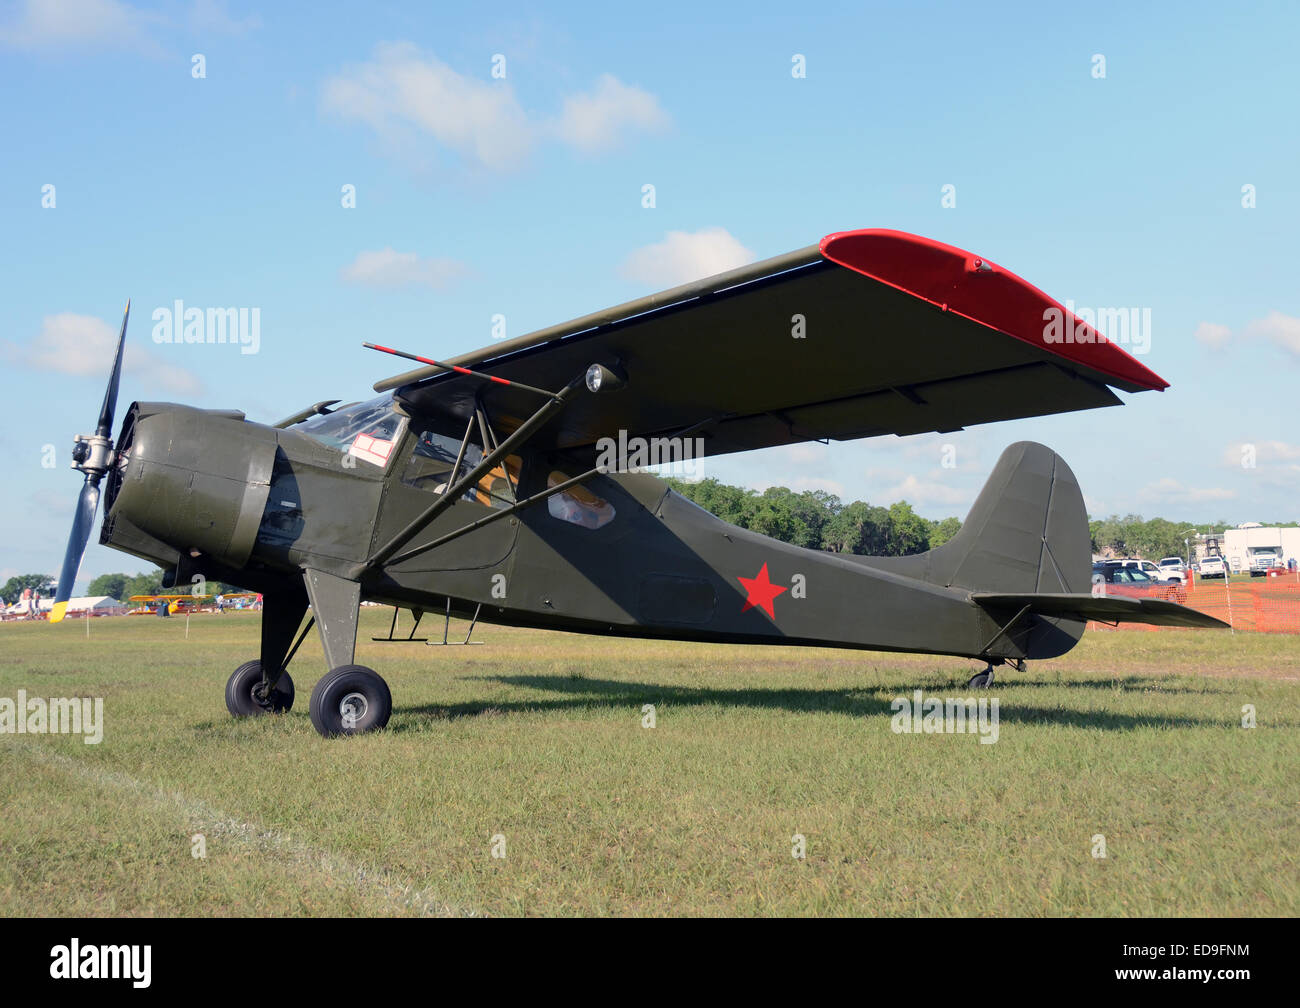 Retro propeller airplane in camouflage colors - Stock Image